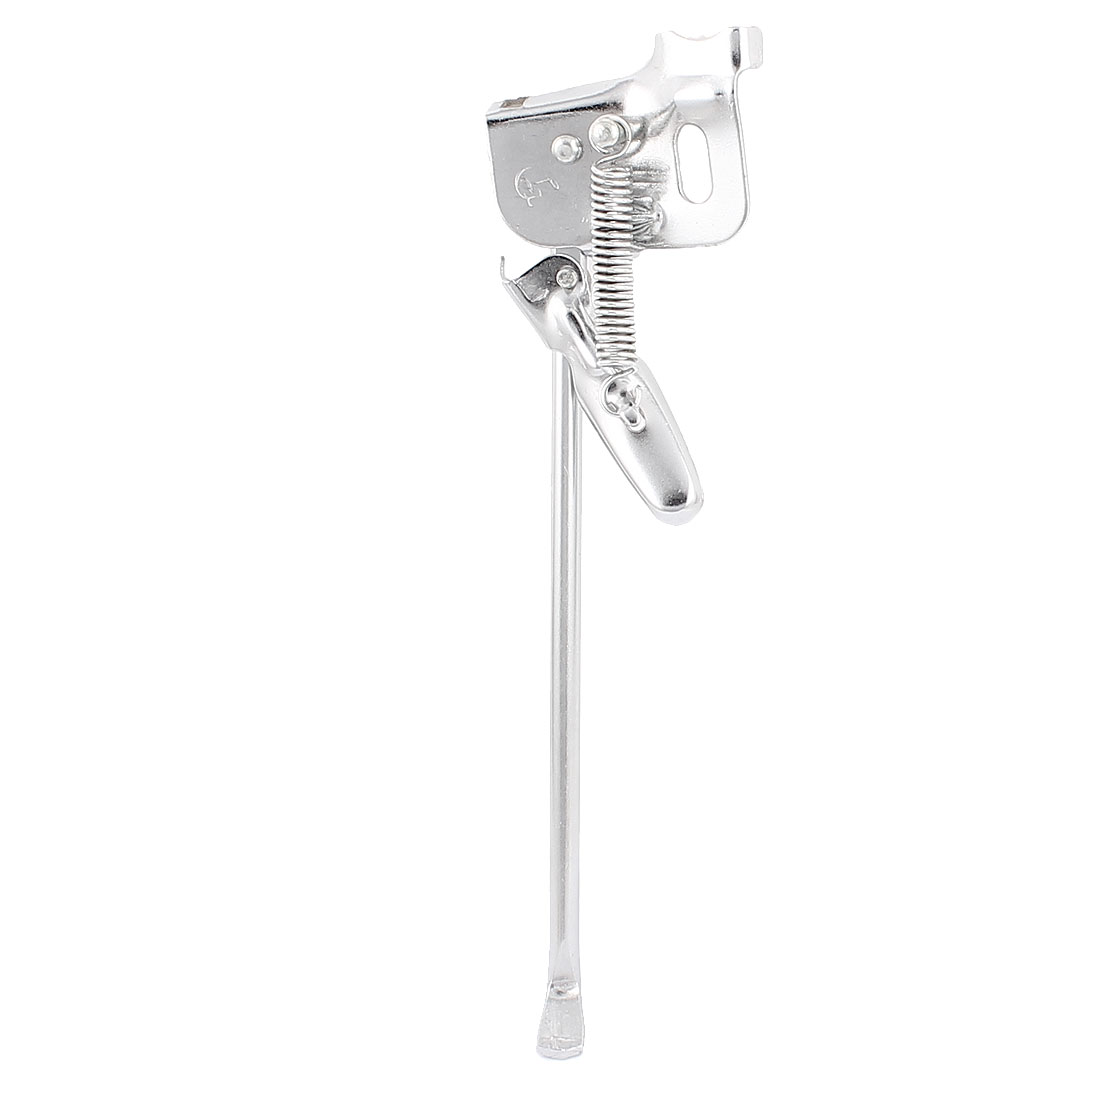 Cycling Road Mountain Bike Bicycle Kick Stand Side Kickstand Silver Tone